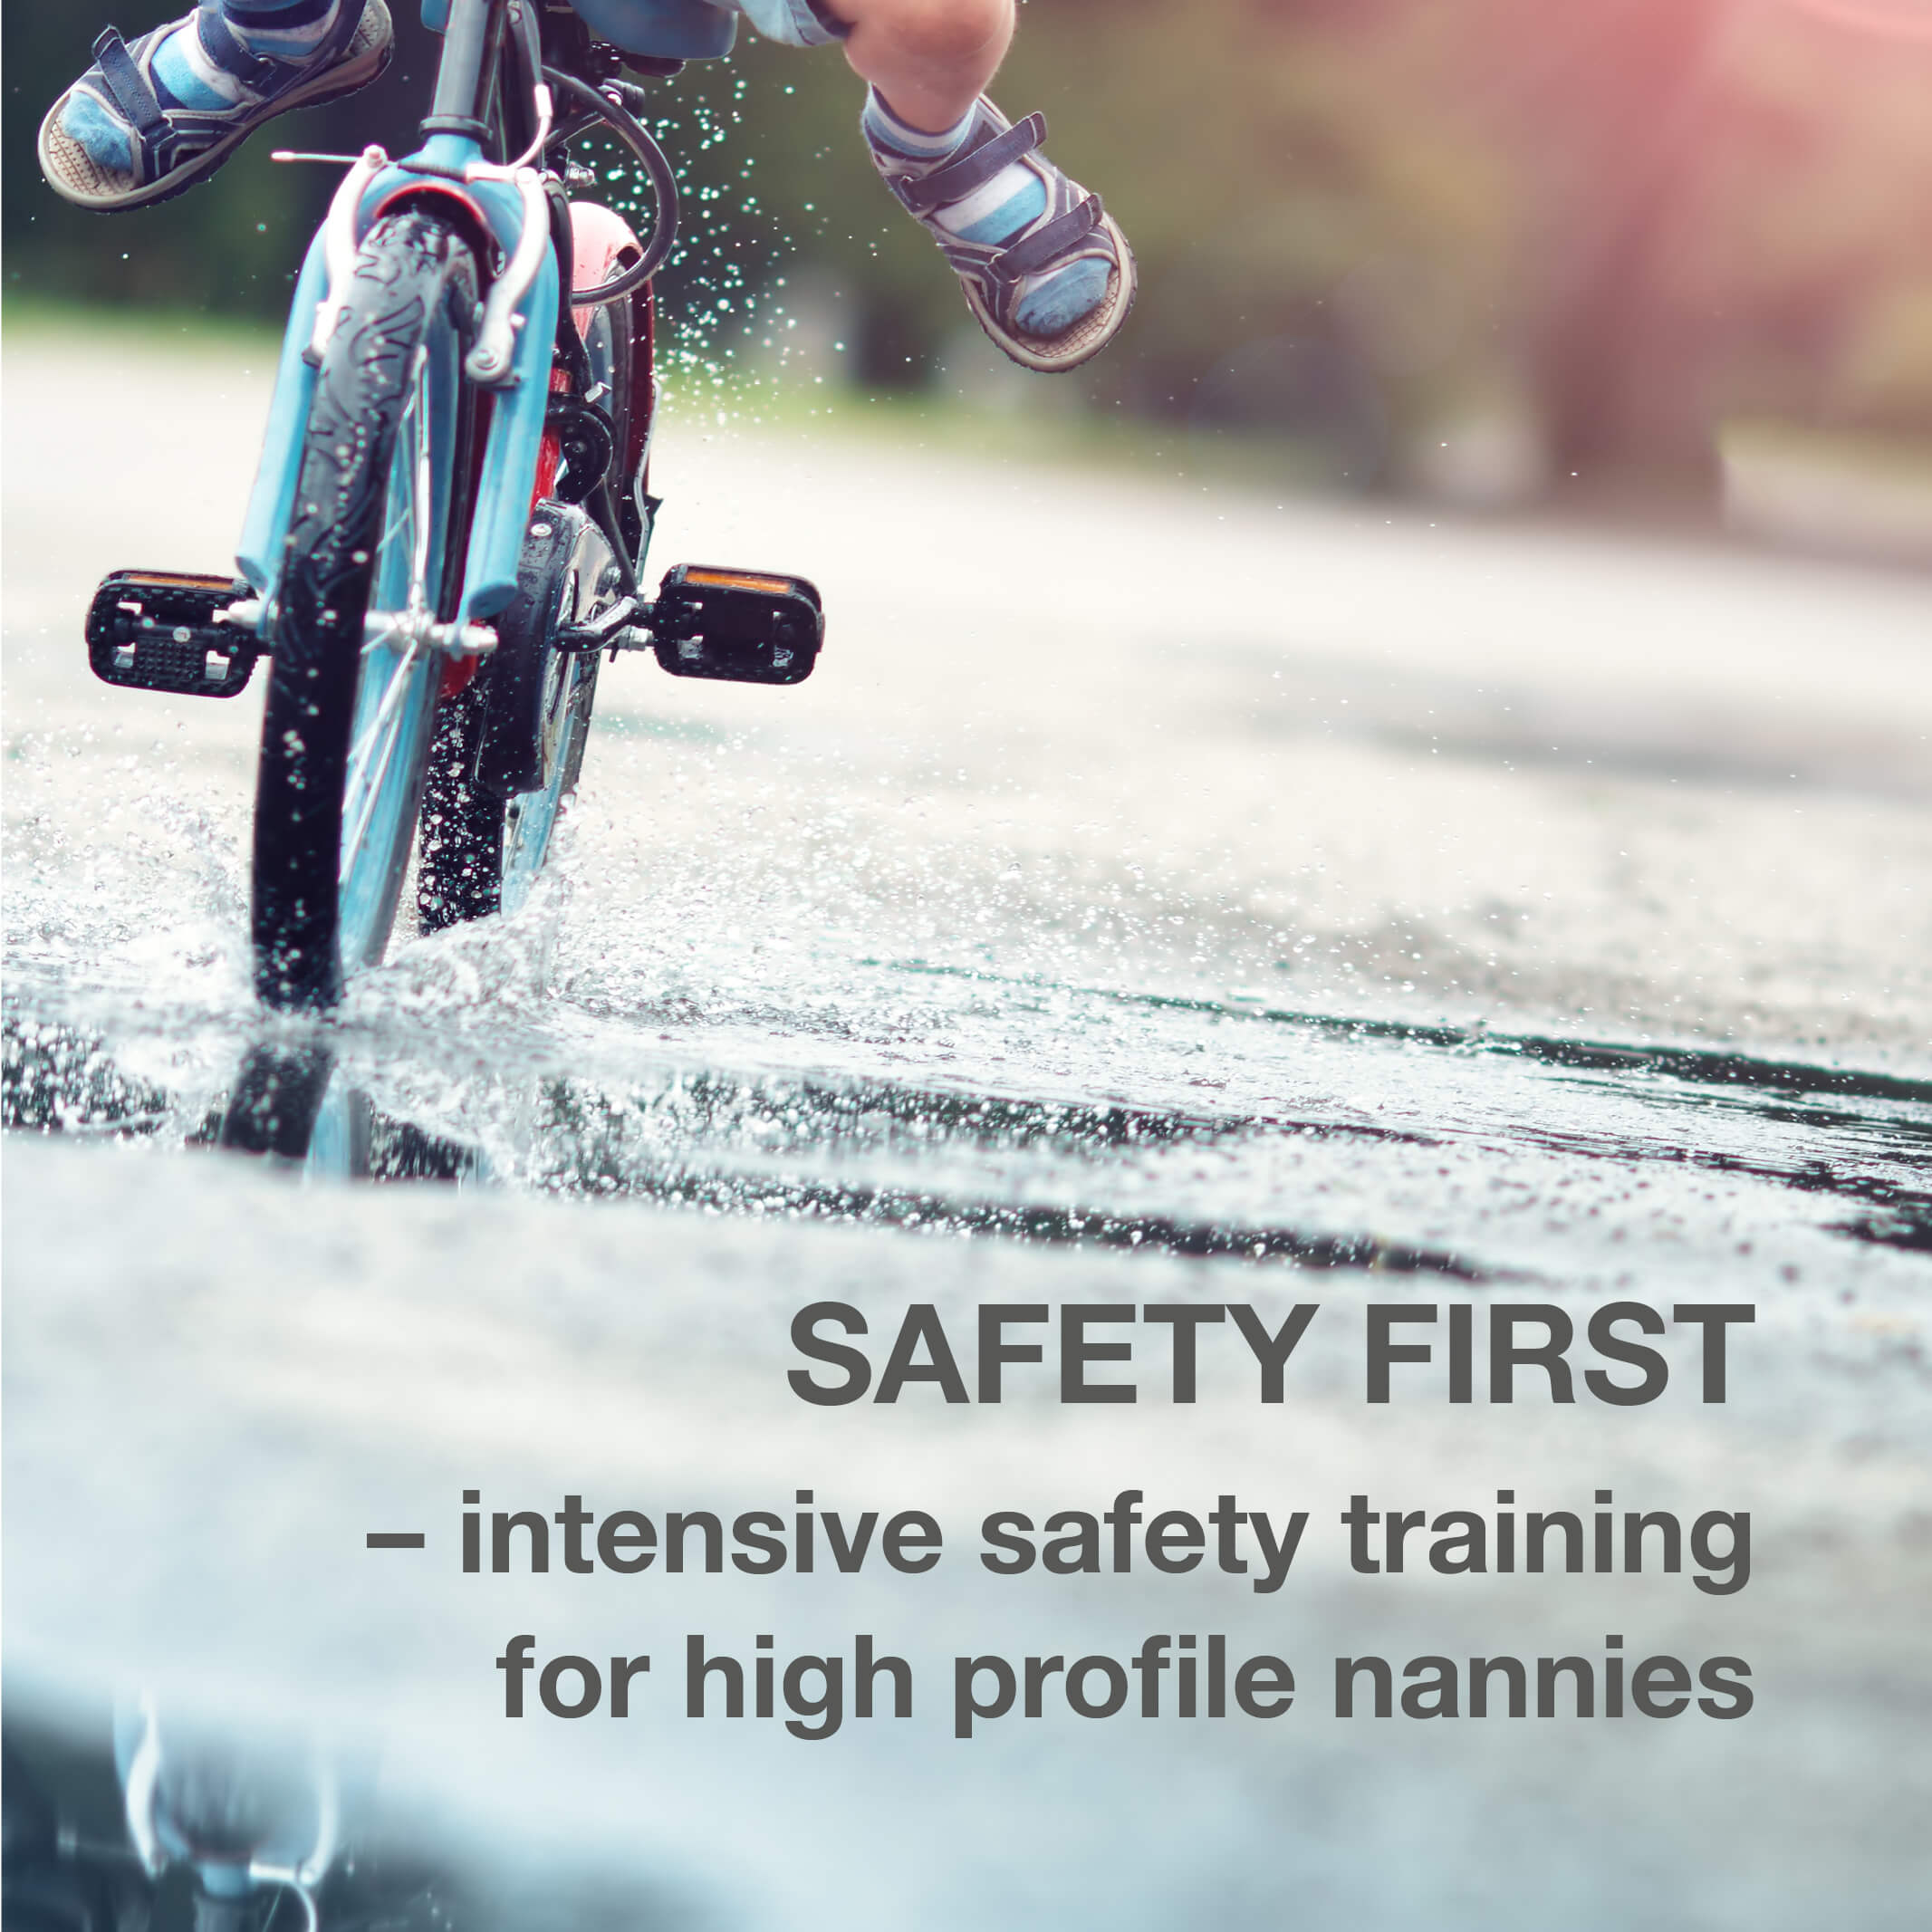 Security training for high profile nannies in vip households